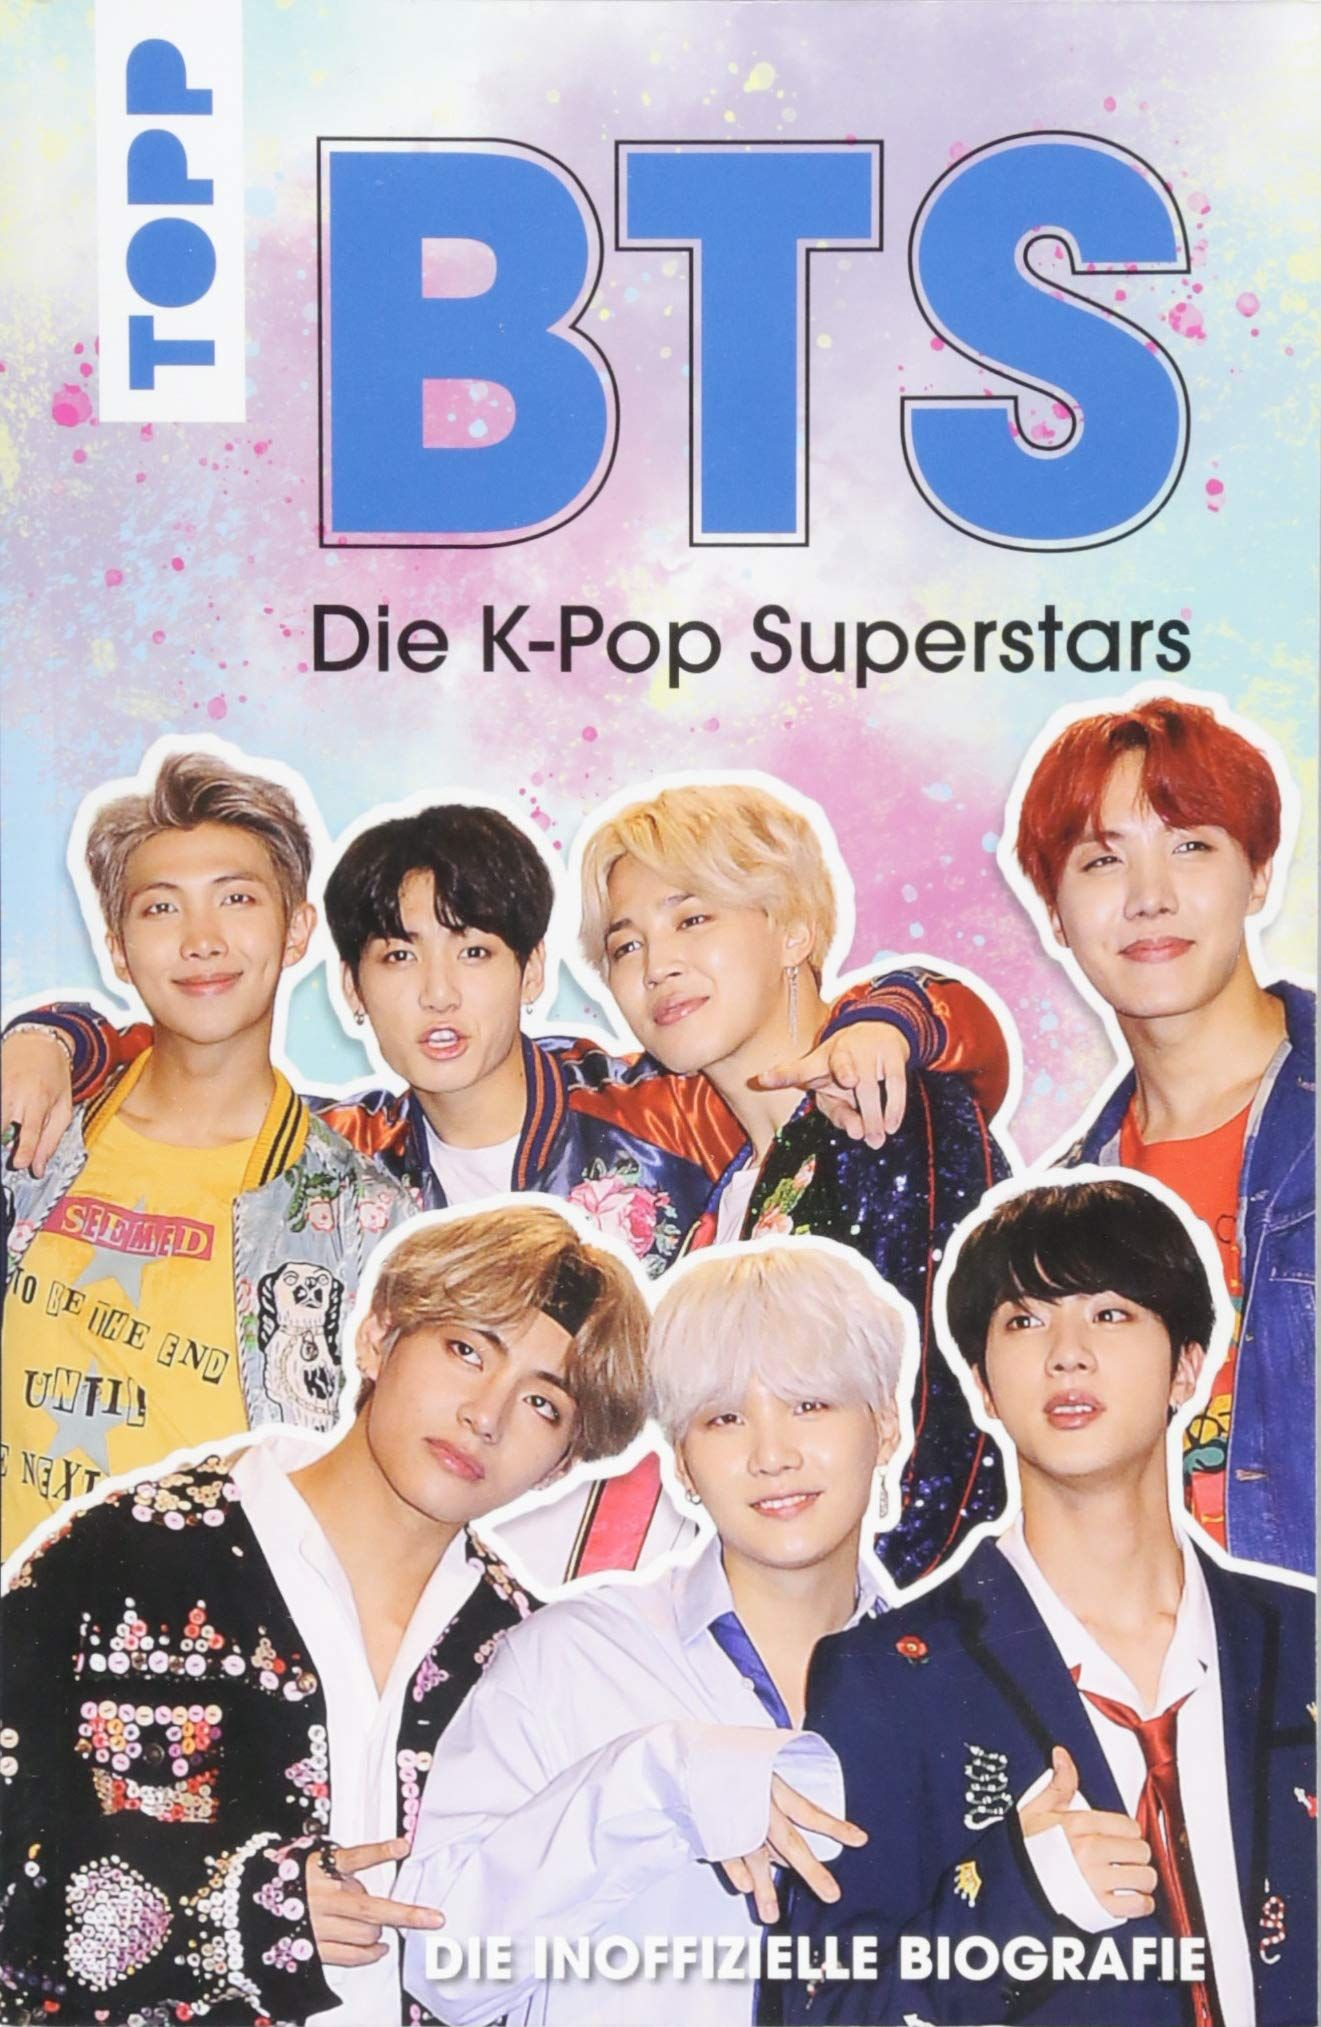 Bts Die K Pop Superstars Deutsche Ausgabe Die Inoffizielle Biografie Amazon Co Uk Adrian Besley 9783772484353 Books Superstar Bts Beautiful Kpop